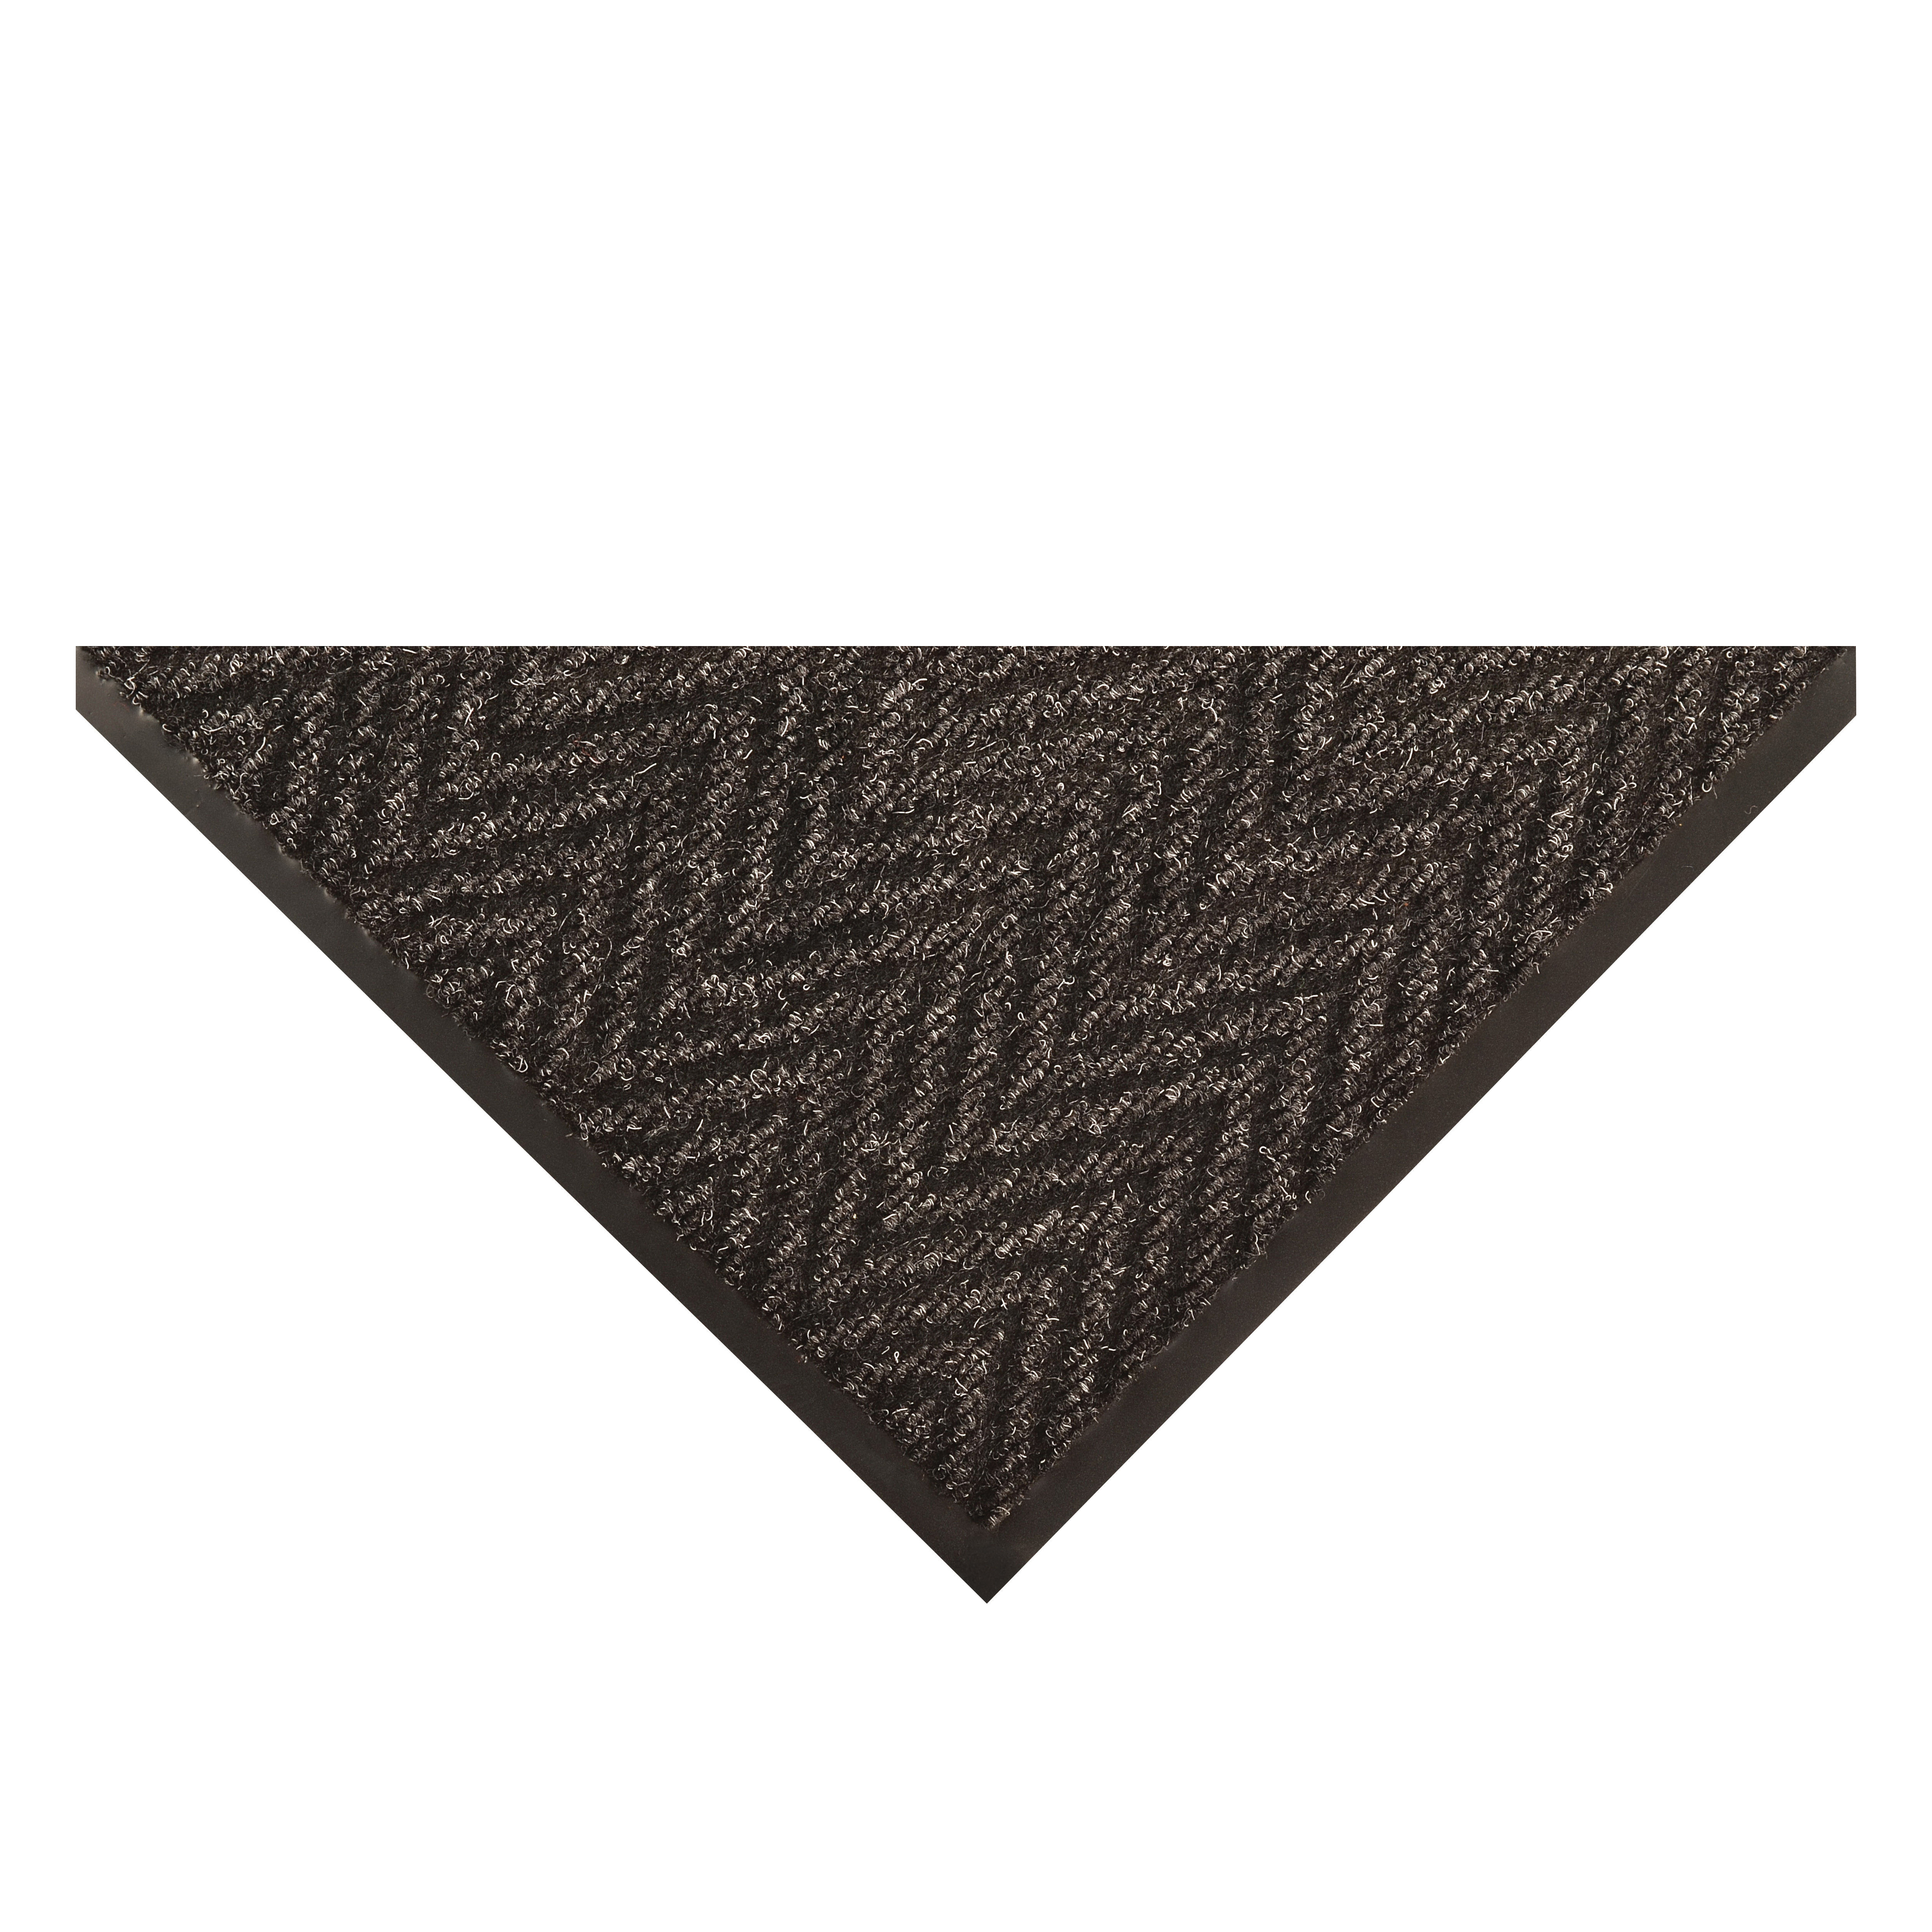 NoTrax® 118S0046CH Arrow Trax™ 118 Rectangular Entrance Floor Mat, 6 ft L x 4 ft W x 3/8 in THK, Charcoal, Herringbone/Needle Punch Surface Pattern, Dry/Scrape Surface, Resists: Crushing, Indoor